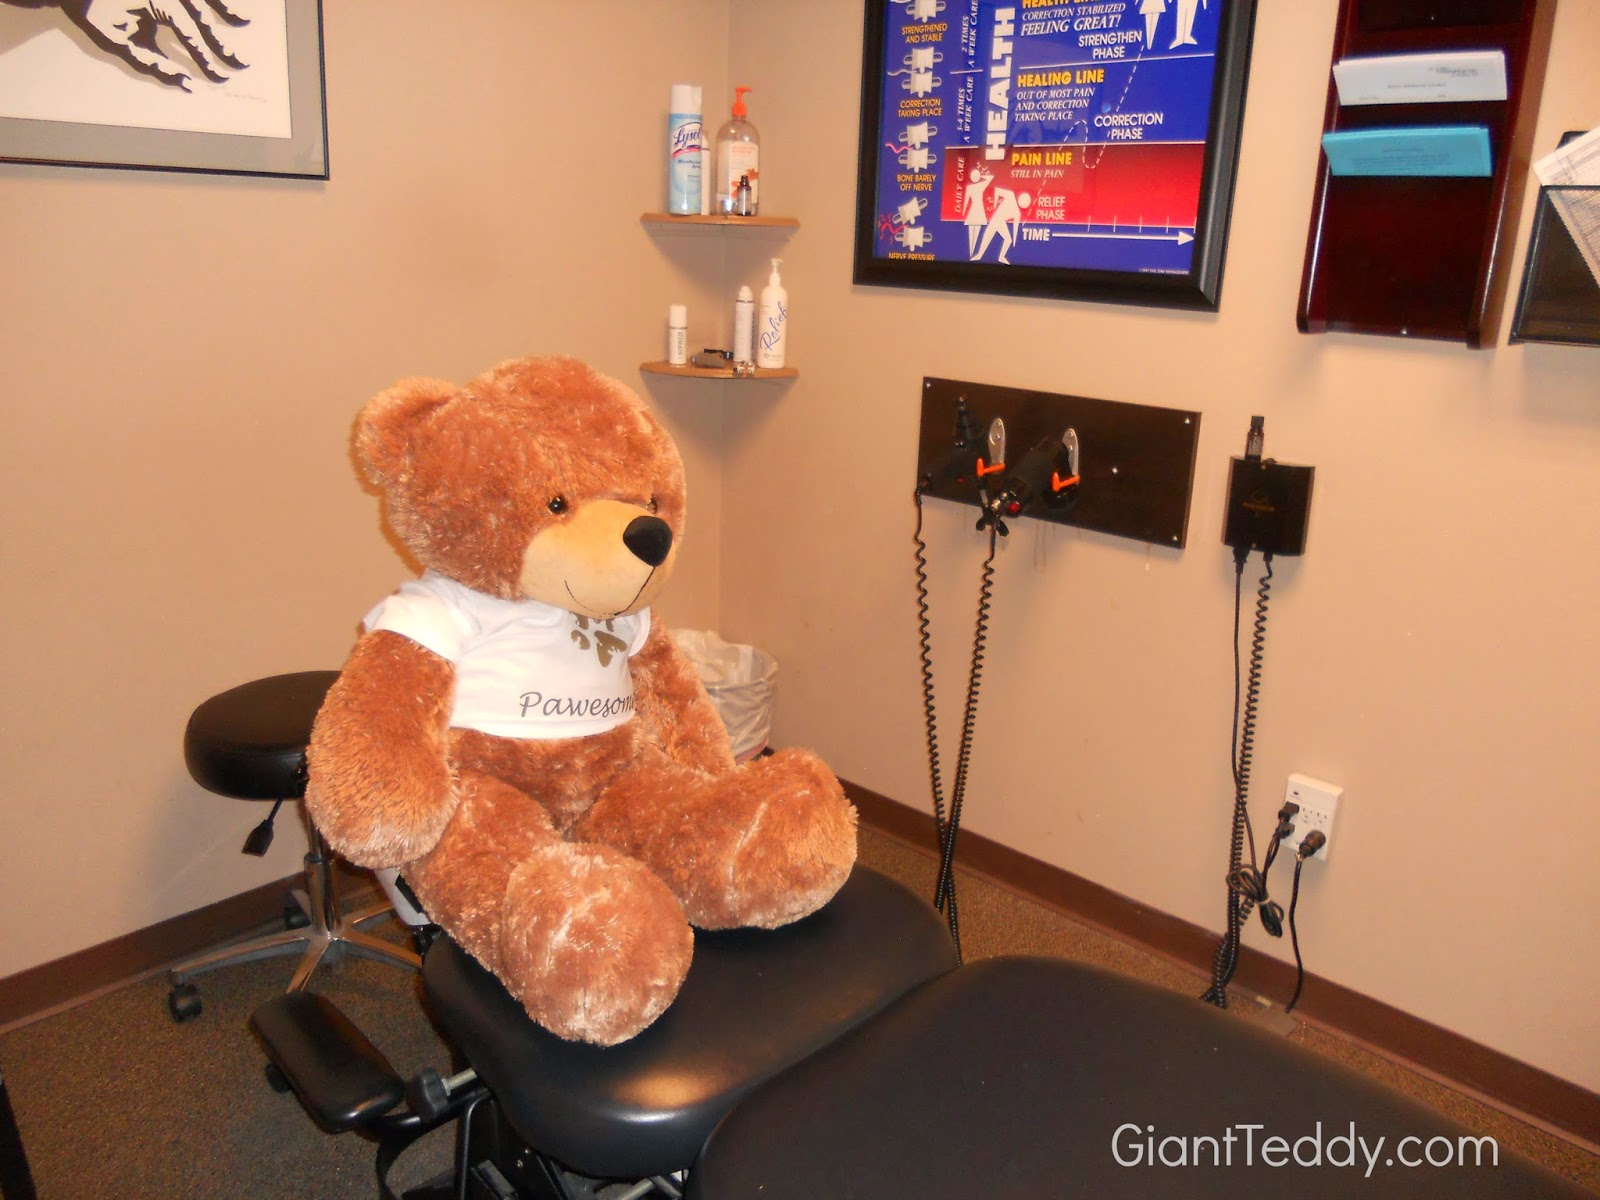 patient was a Giant Teddy bear